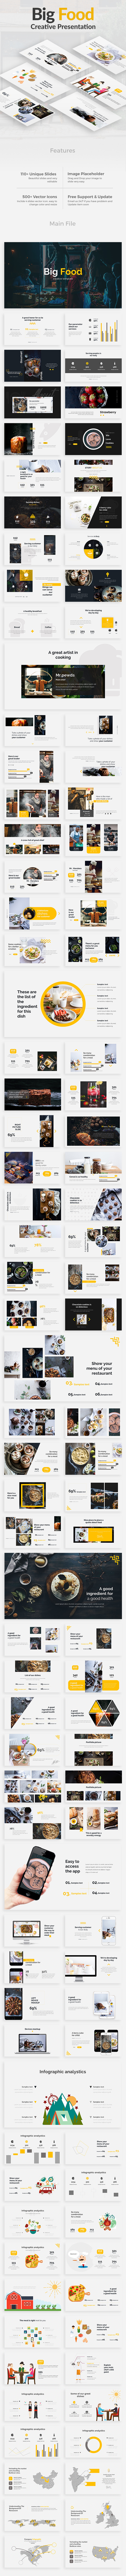 GraphicRiver Big Food Creative Google Slide Template 21163245